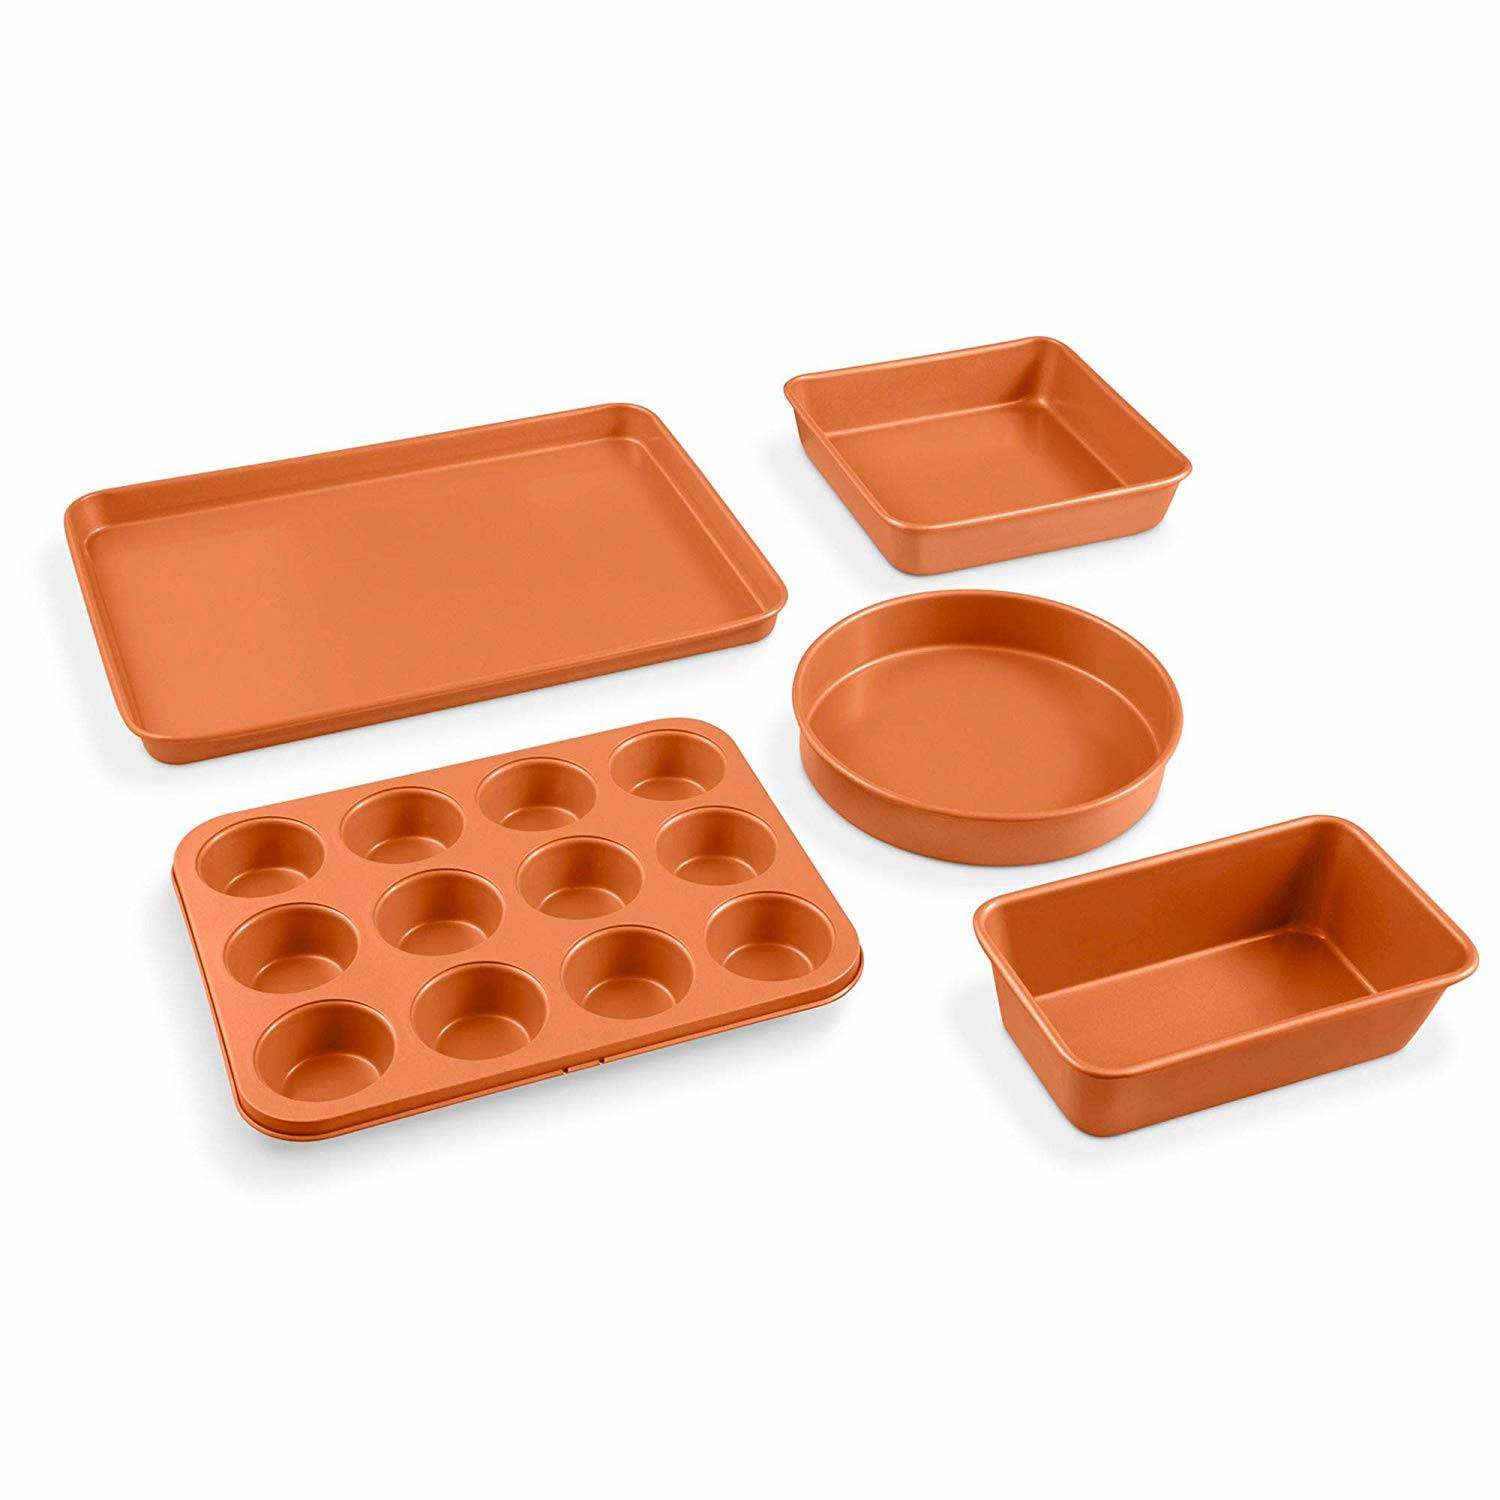 5 PC BAKE SET